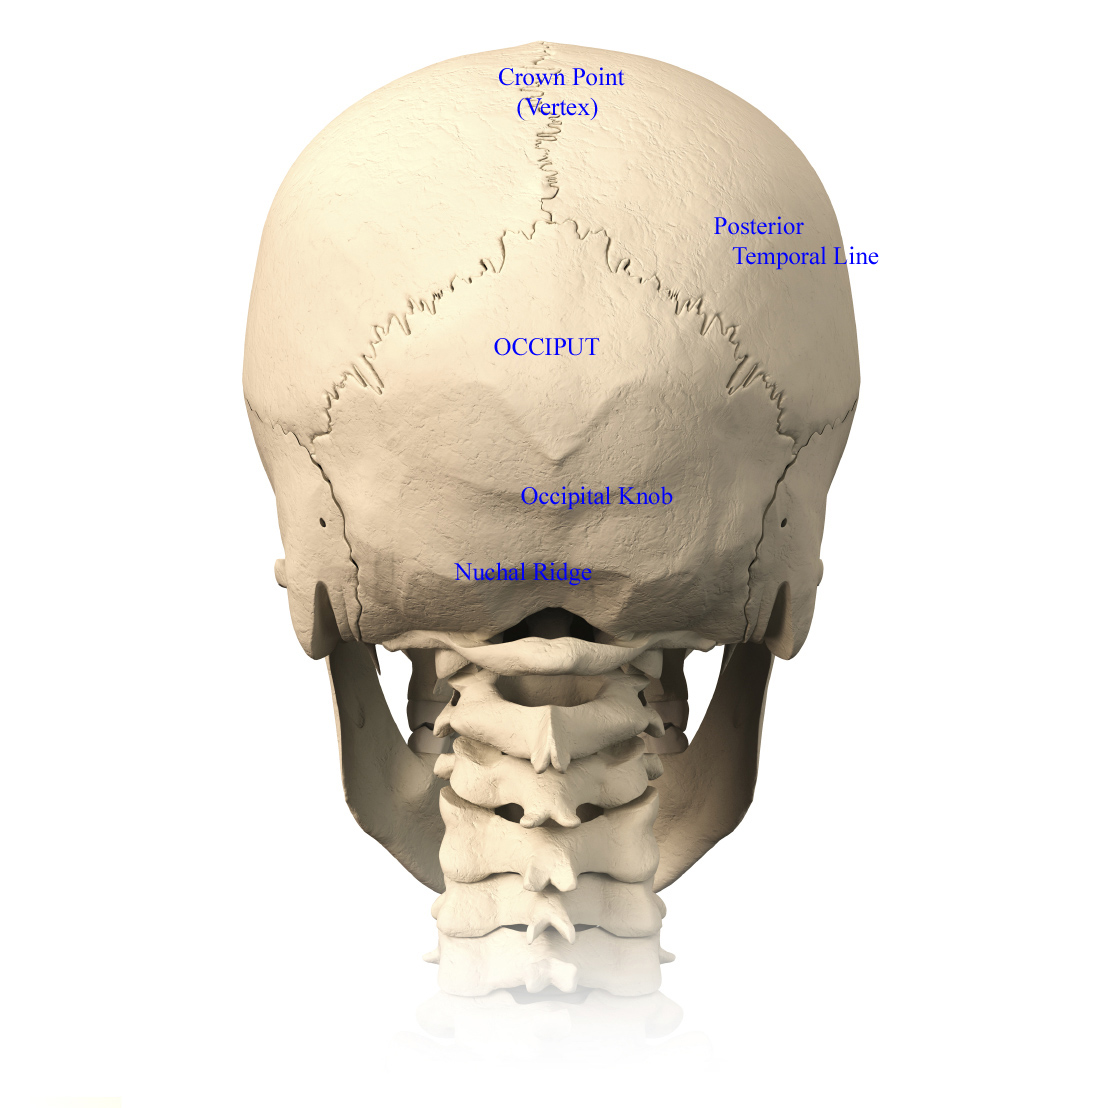 Skull Anatomy - Terminology | Dr. Barry L. Eppley